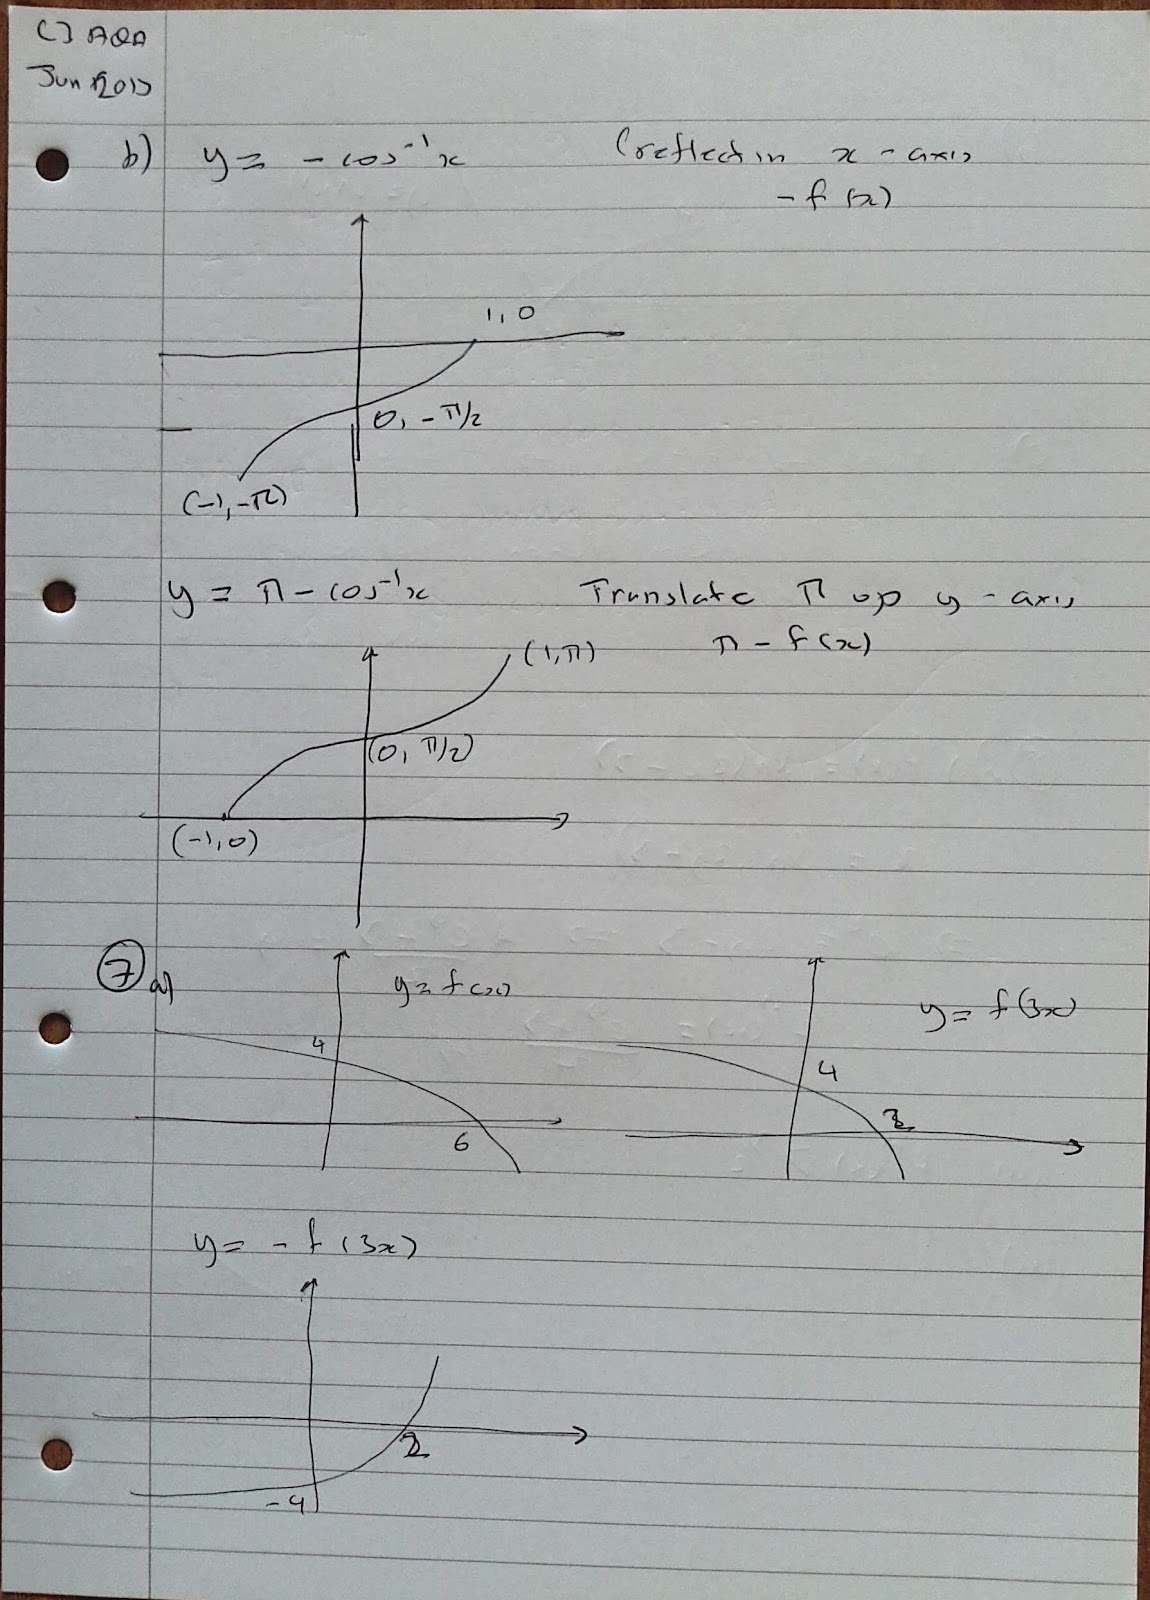 A Level Maths Notes: AQA Core 3 (C3) Summer 2013 Exam